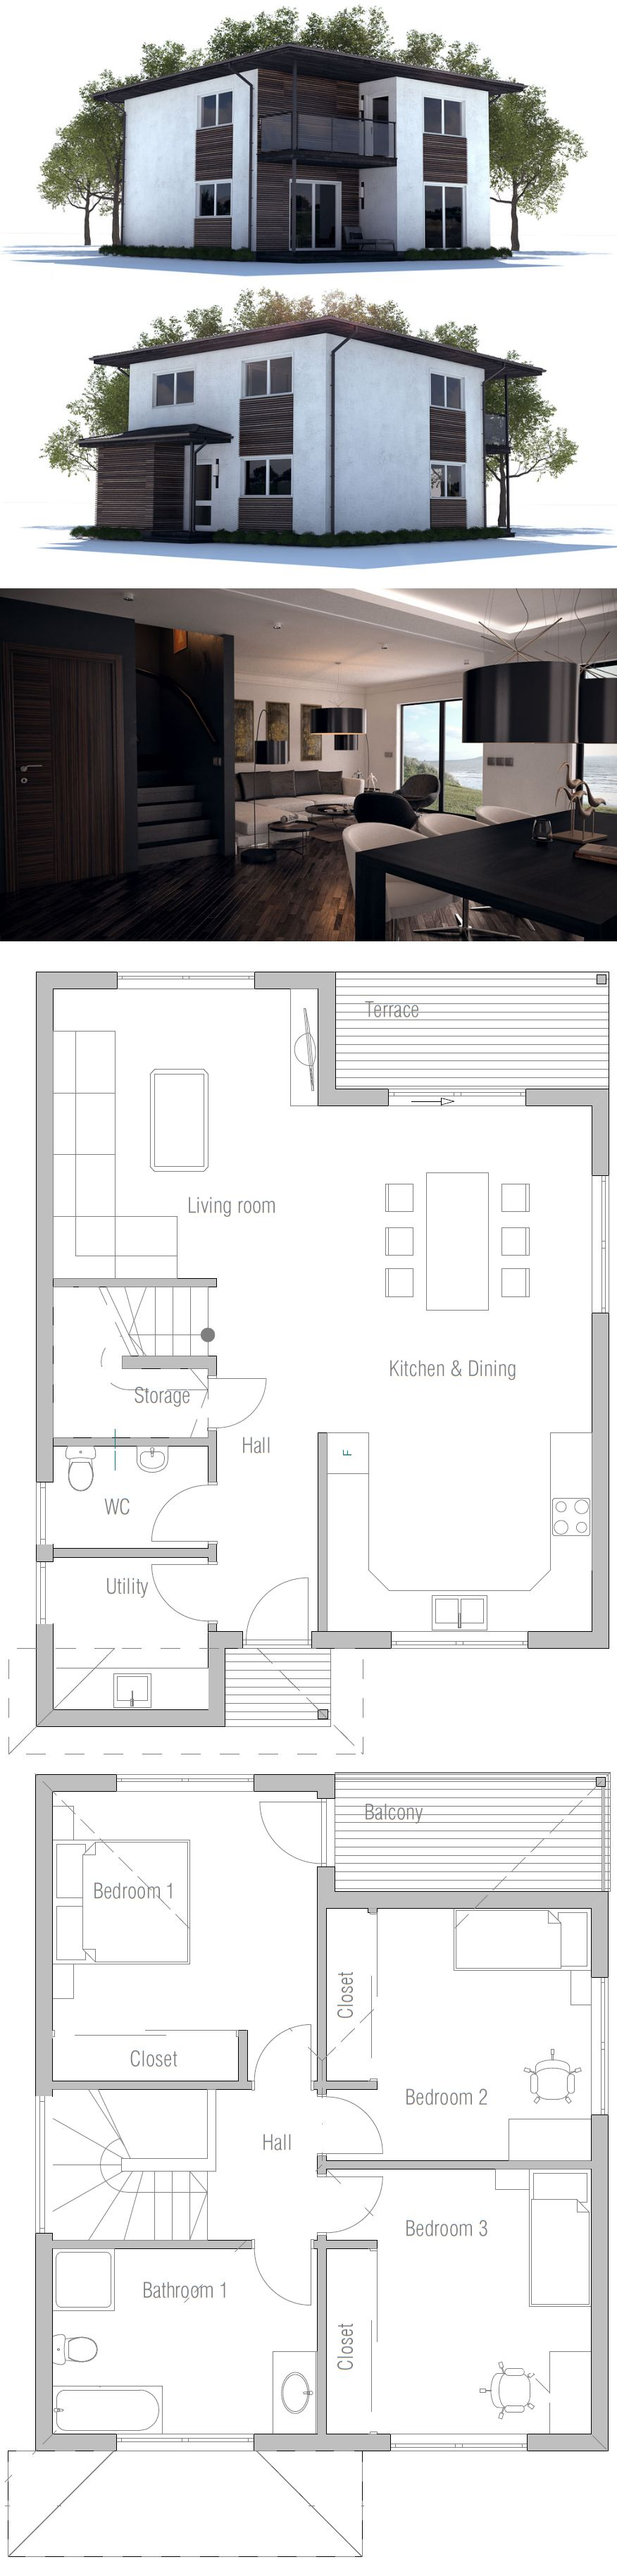 Small House Plan Small House Plans Pinterest Small house plans